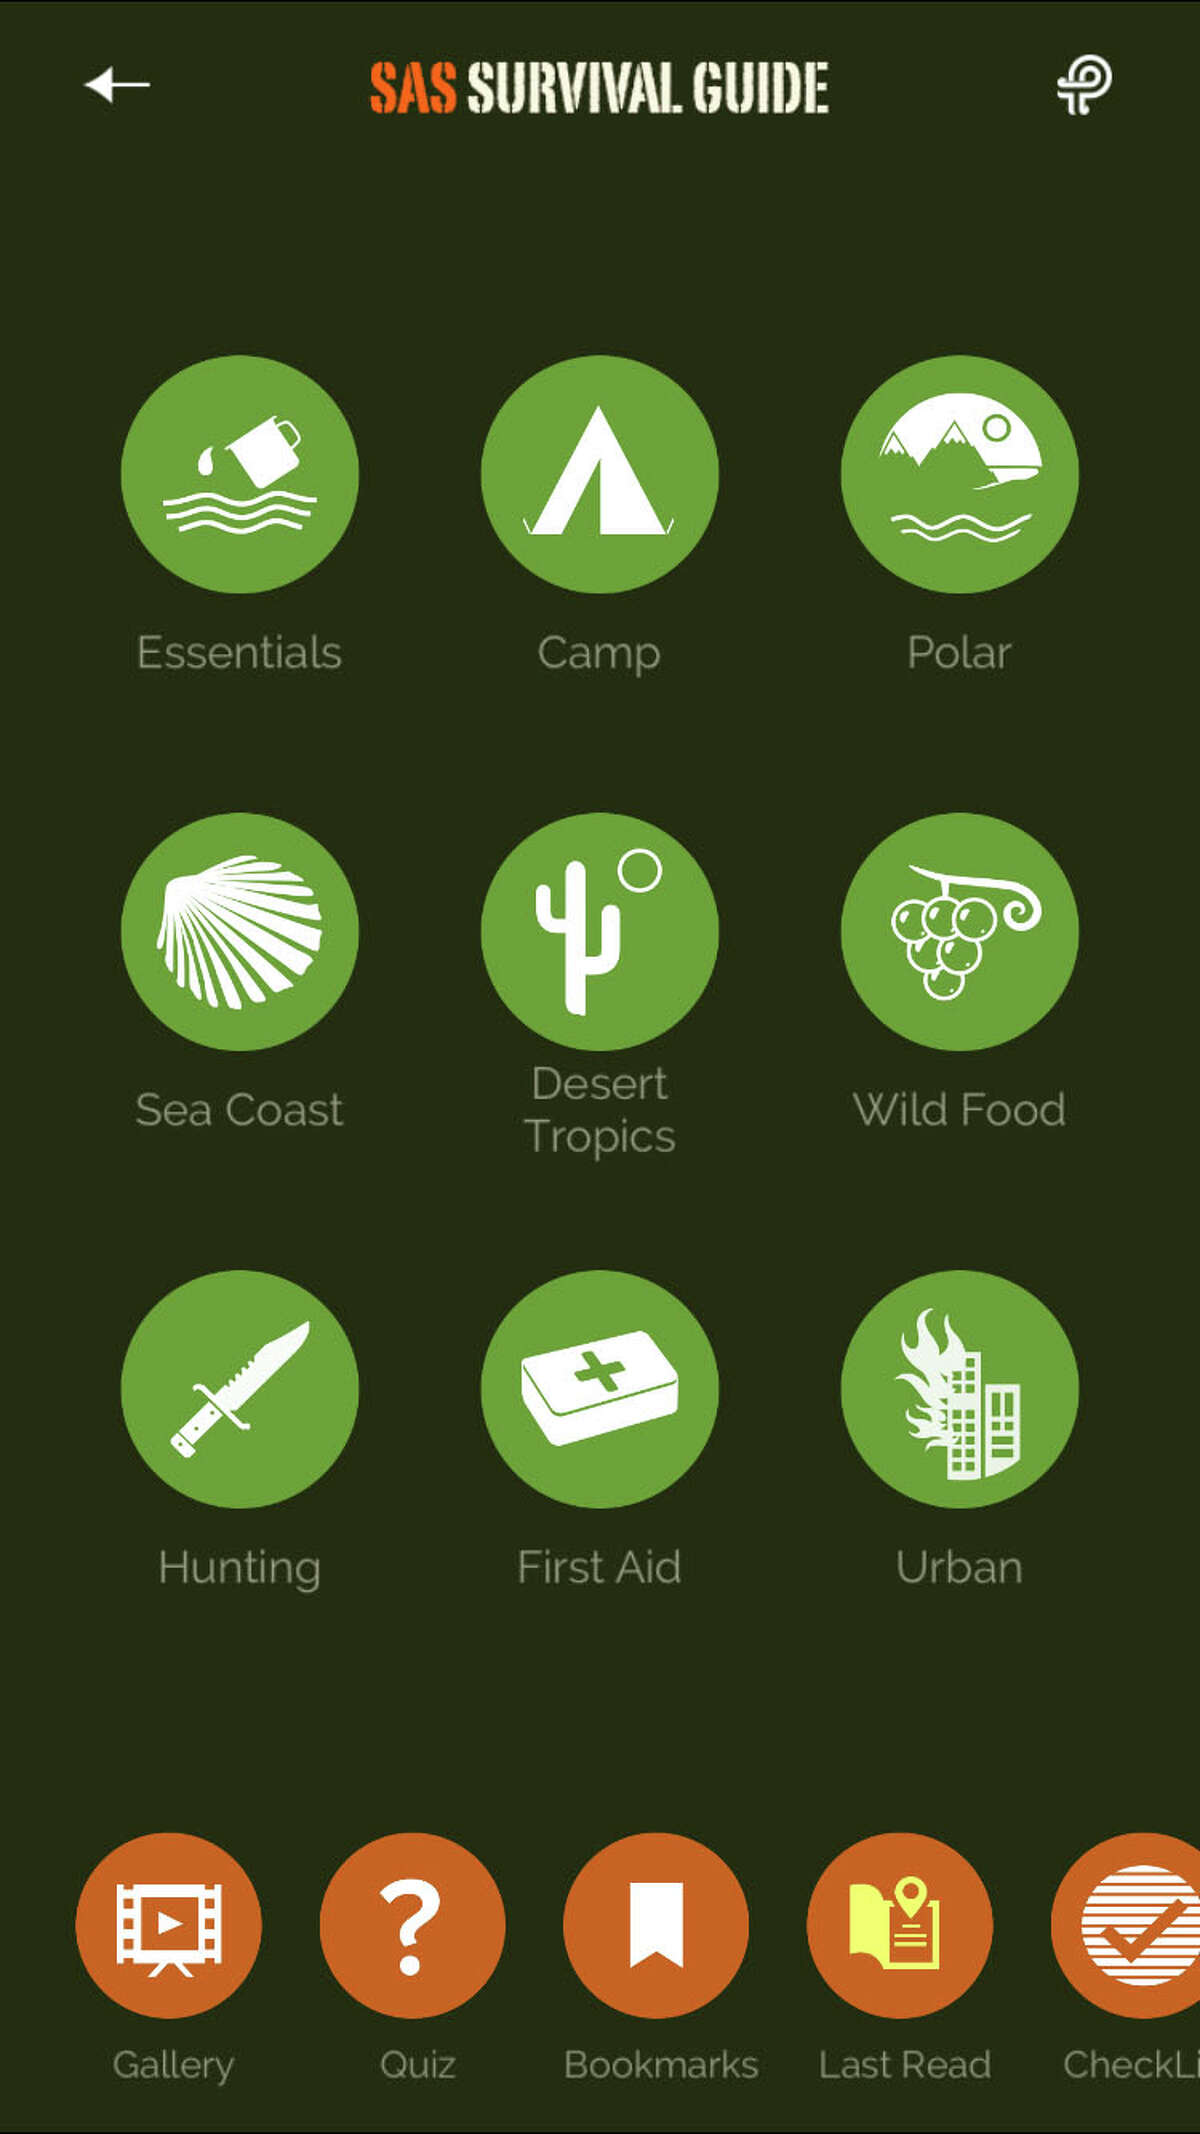 SAS Survival Guide app works on iOS and Android devices.